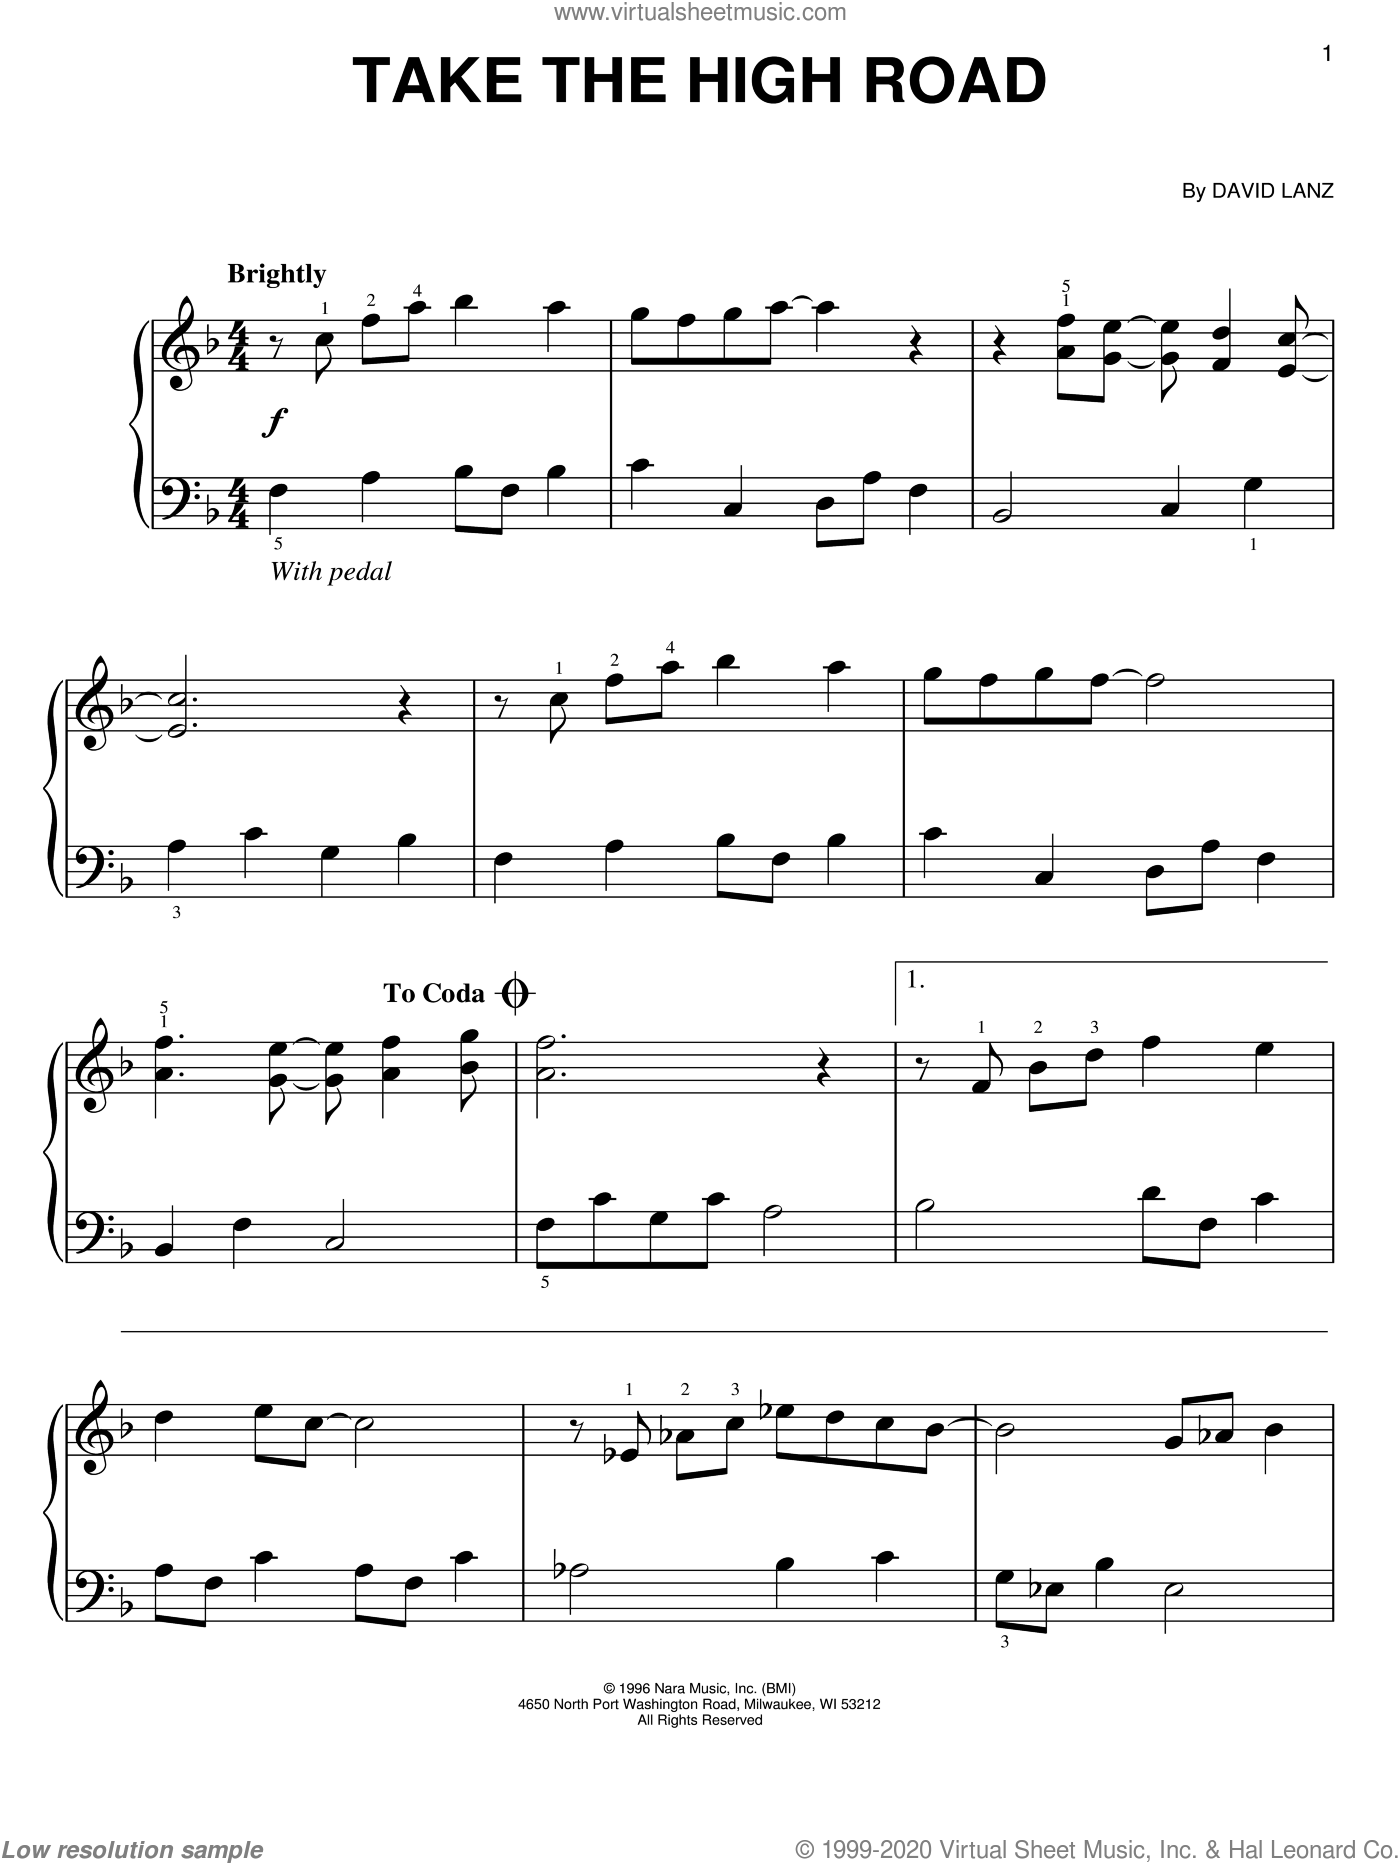 Take The High Road sheet music for piano solo by David Lanz, easy. Score Image Preview.